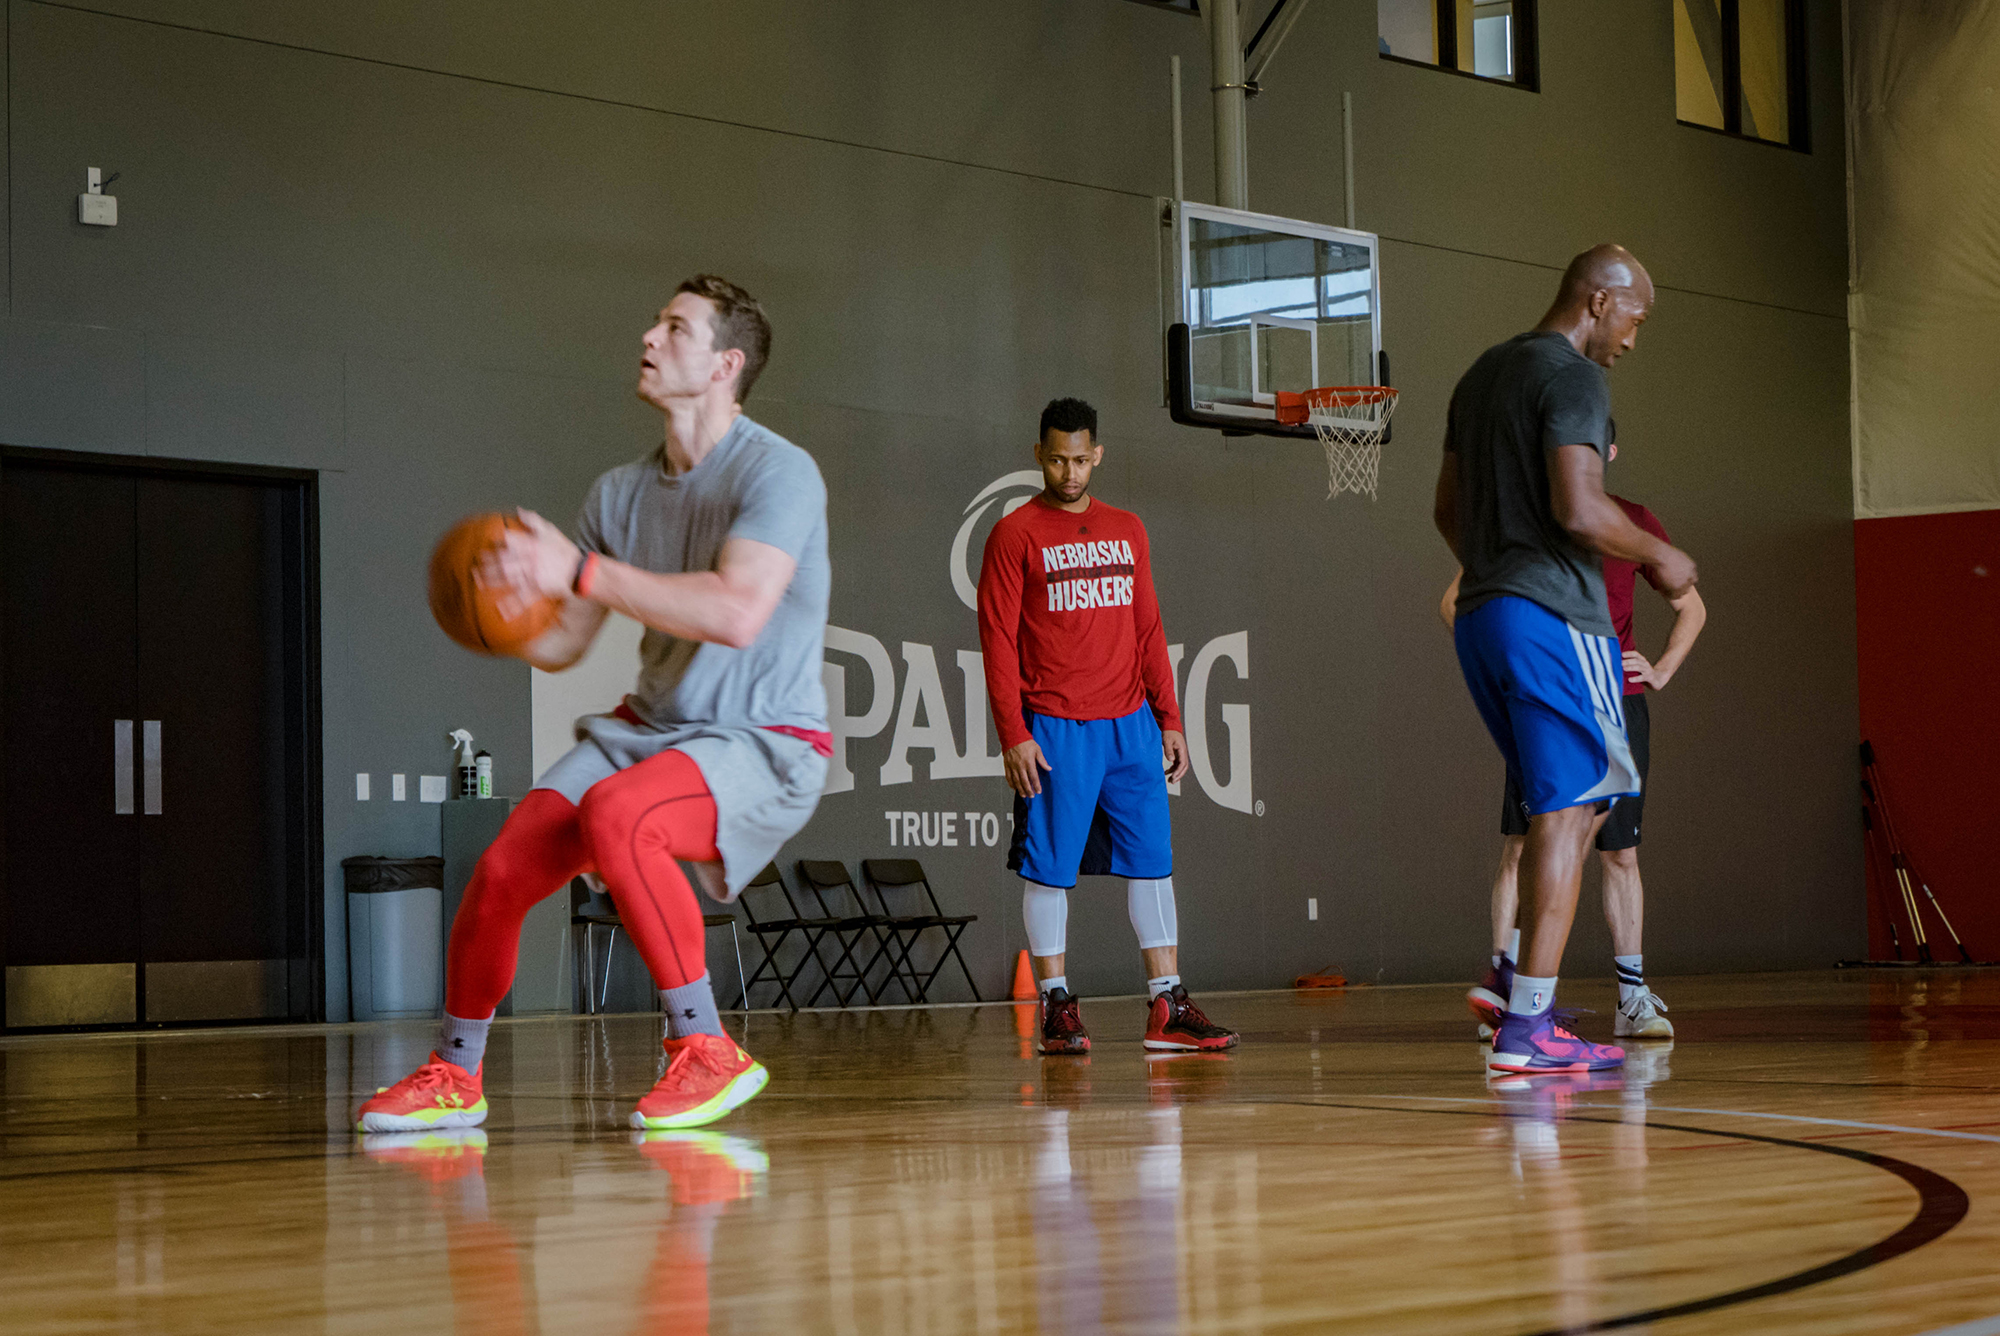 Jimmer Fredette Is One Of The Professional Players I Work With. His Work  Ethic To Be The Best Is What Allows Him To Be A Professional Basketball  Player.